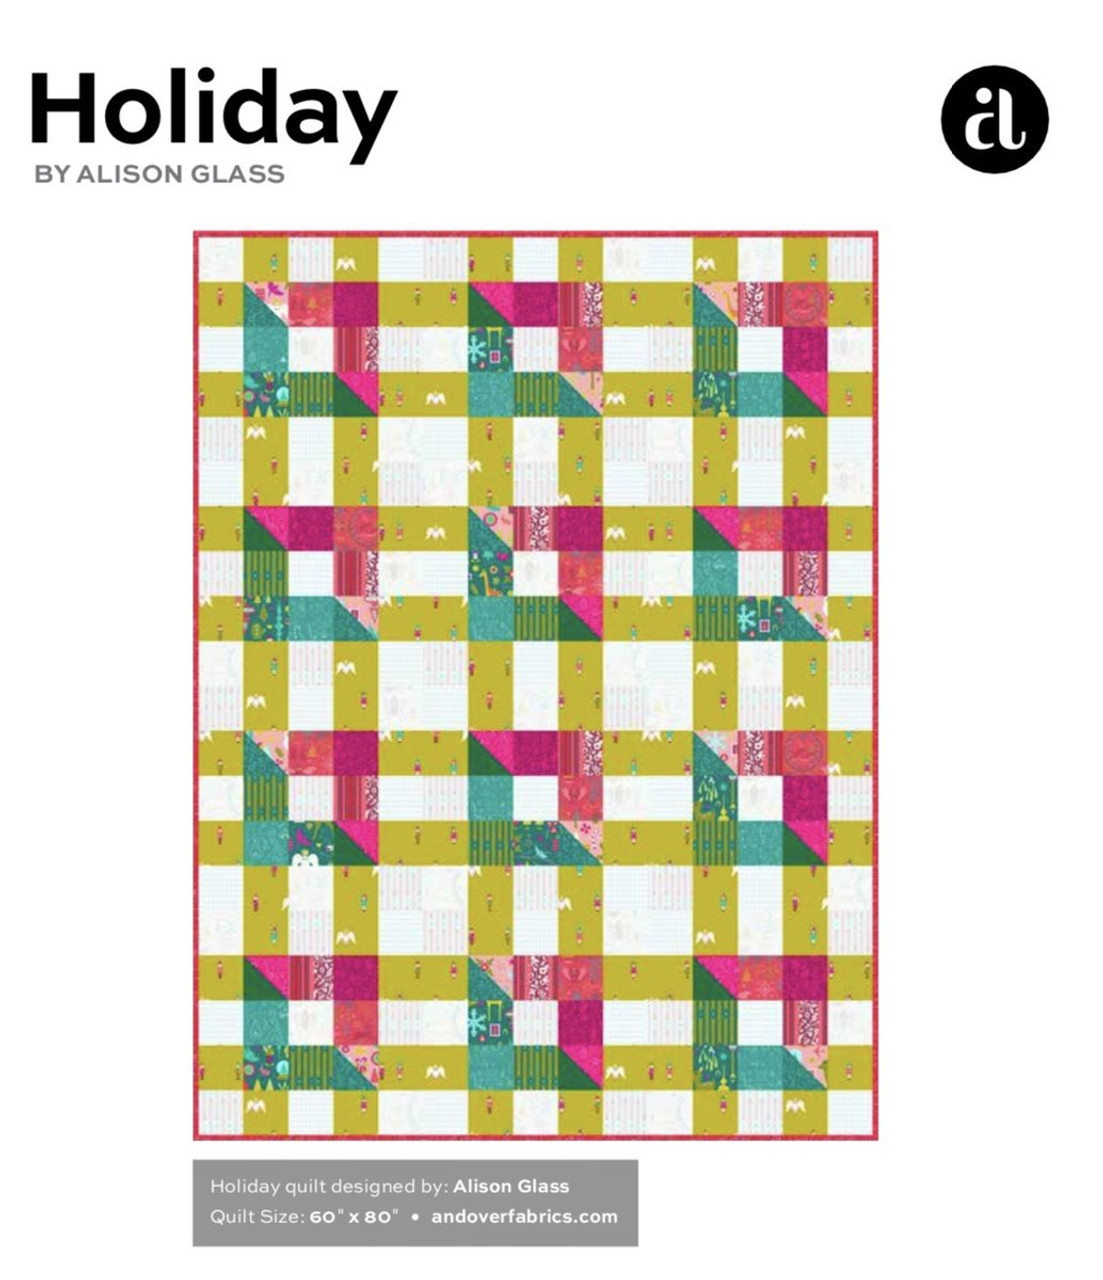 Holiday Pattern & Kit